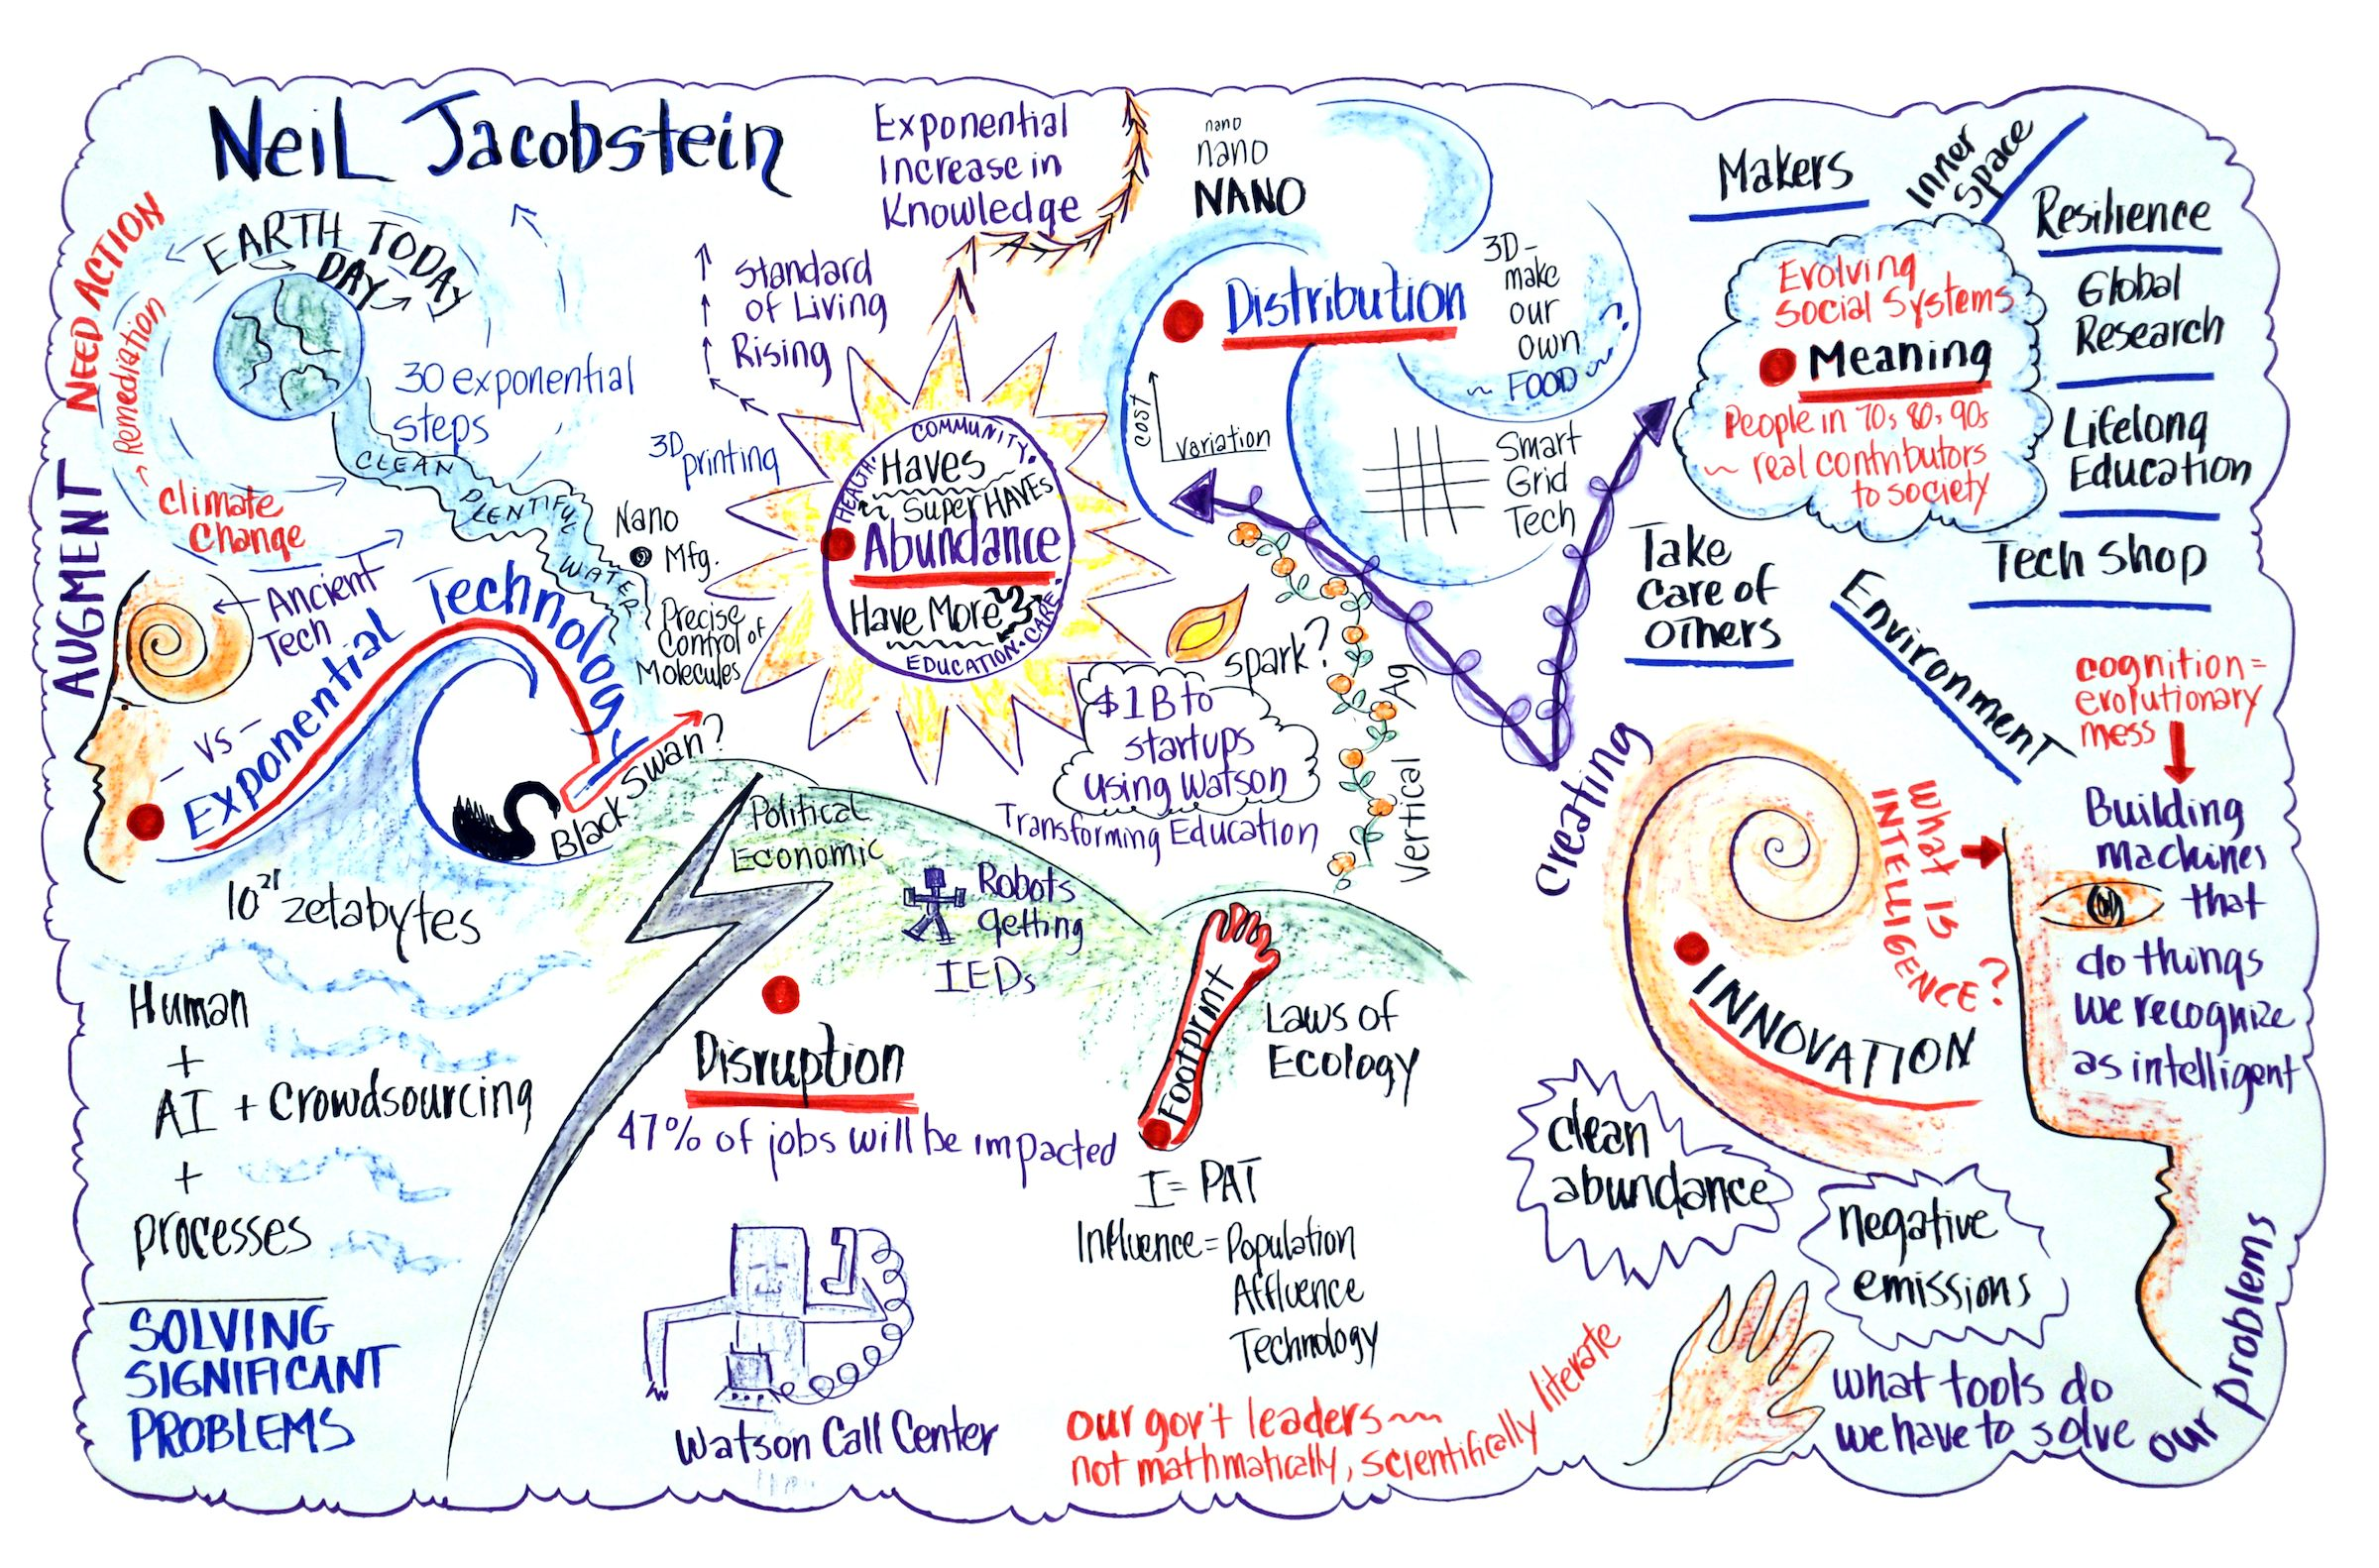 Visual Insight's takeaway from Churchill Club talk by Neil Jacobstein of Singularity University